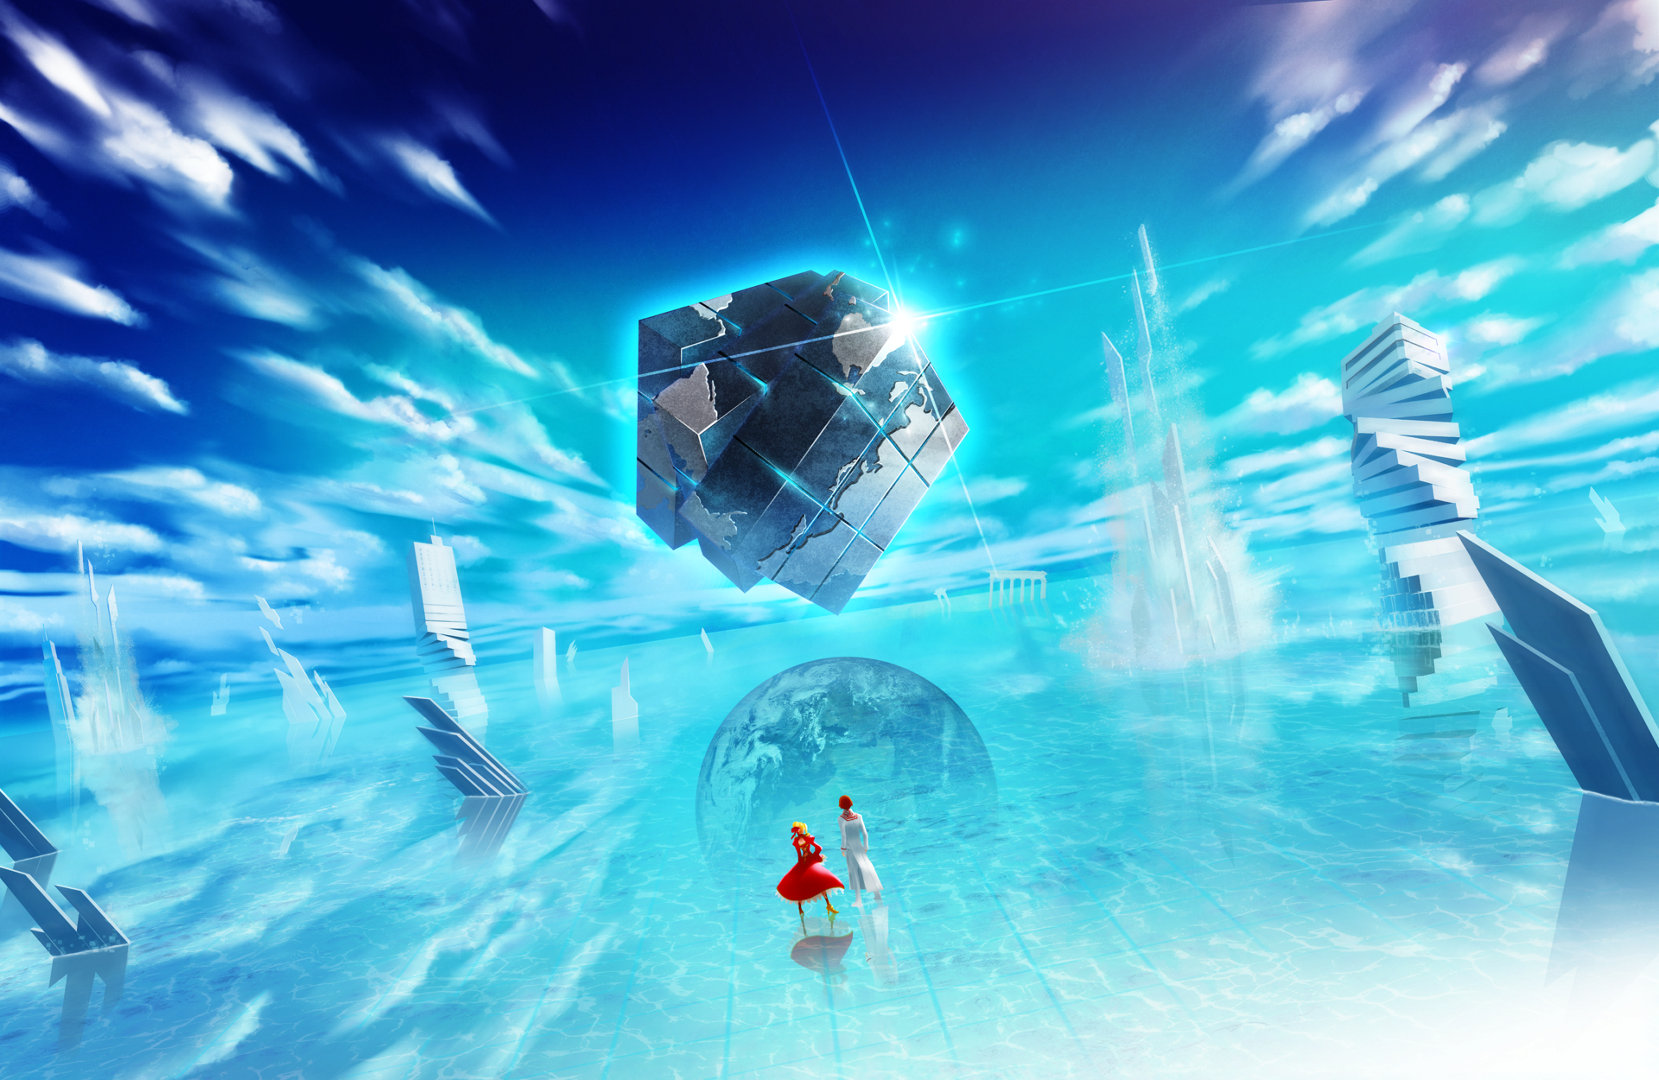 fate-extella-the-umbral-star-story-01-ps